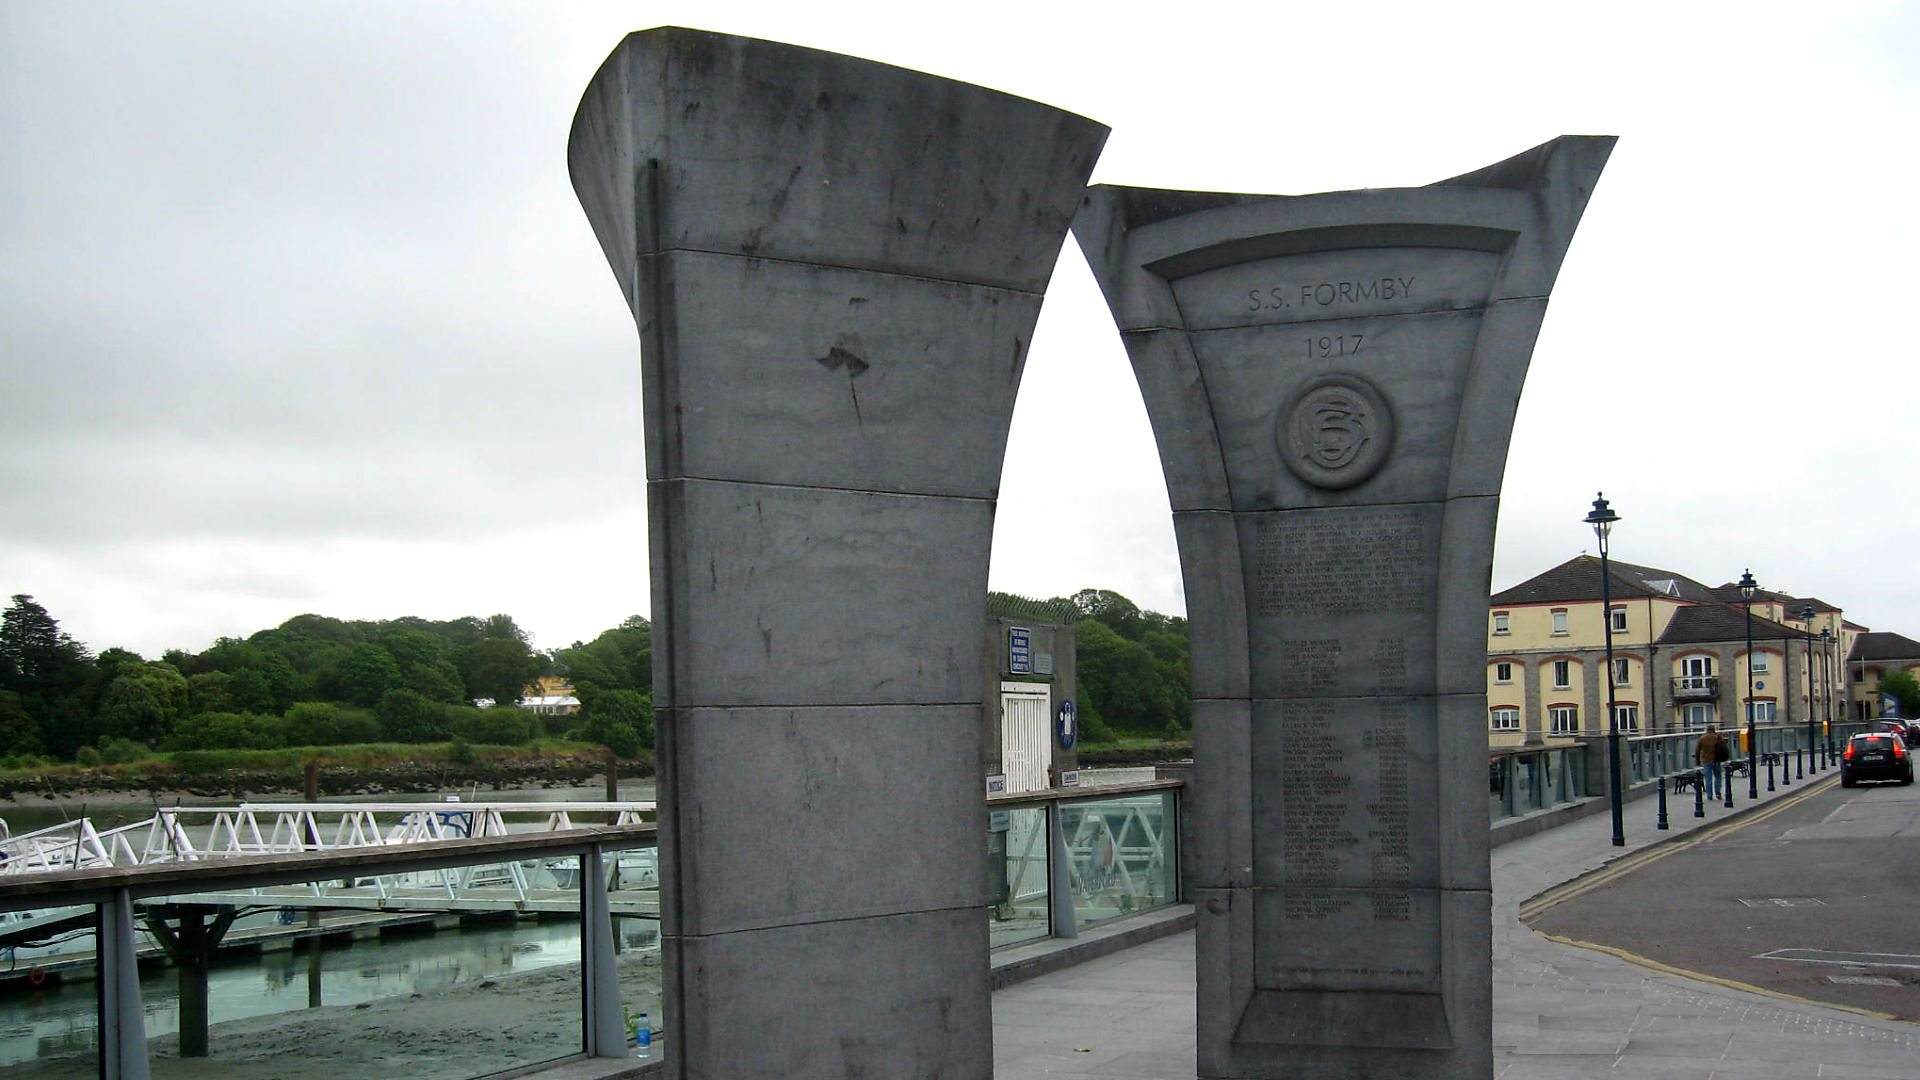 WLR remembers the SS Formby and SS Coningbeg with 'Sink on Sight'